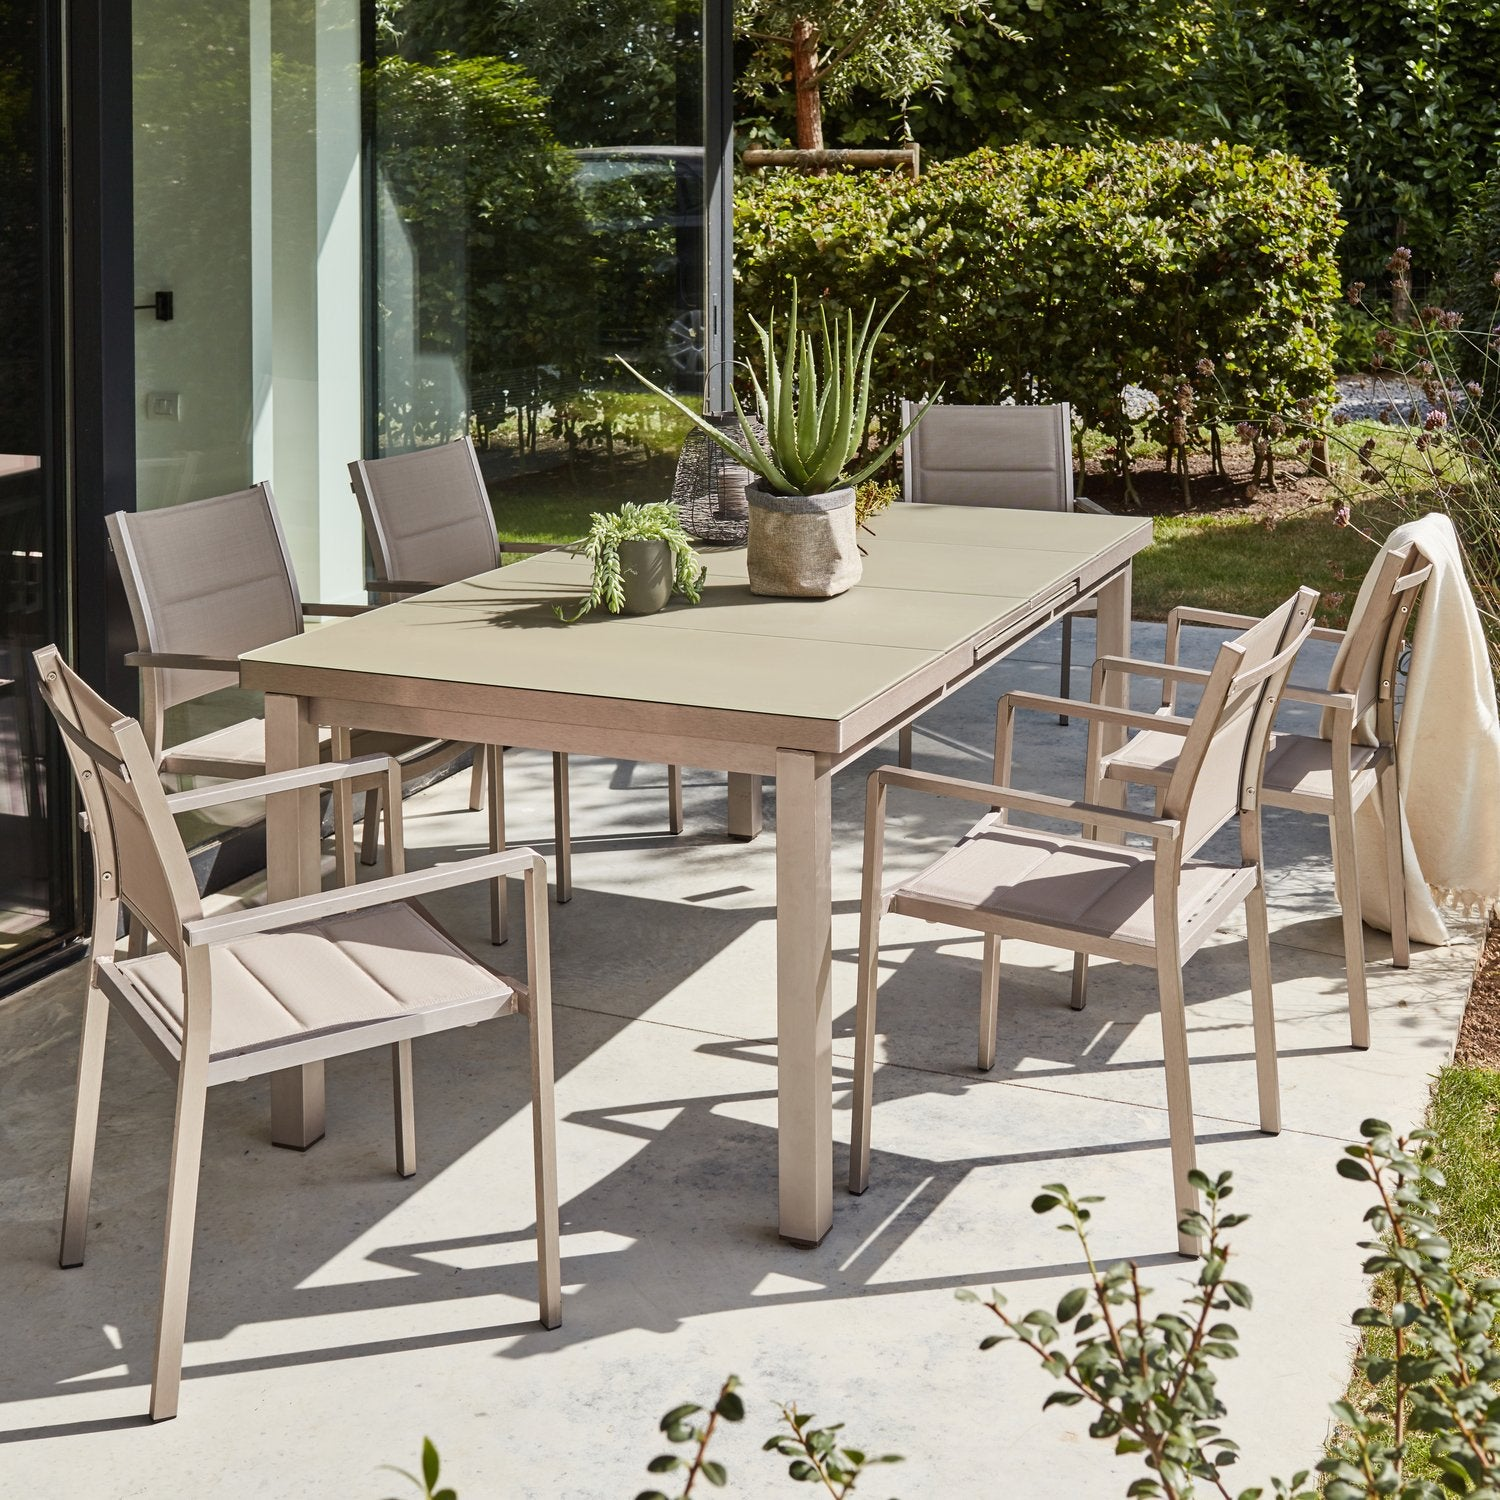 La nouvelle collection de salon de jardin 2019 | Leroy Merlin